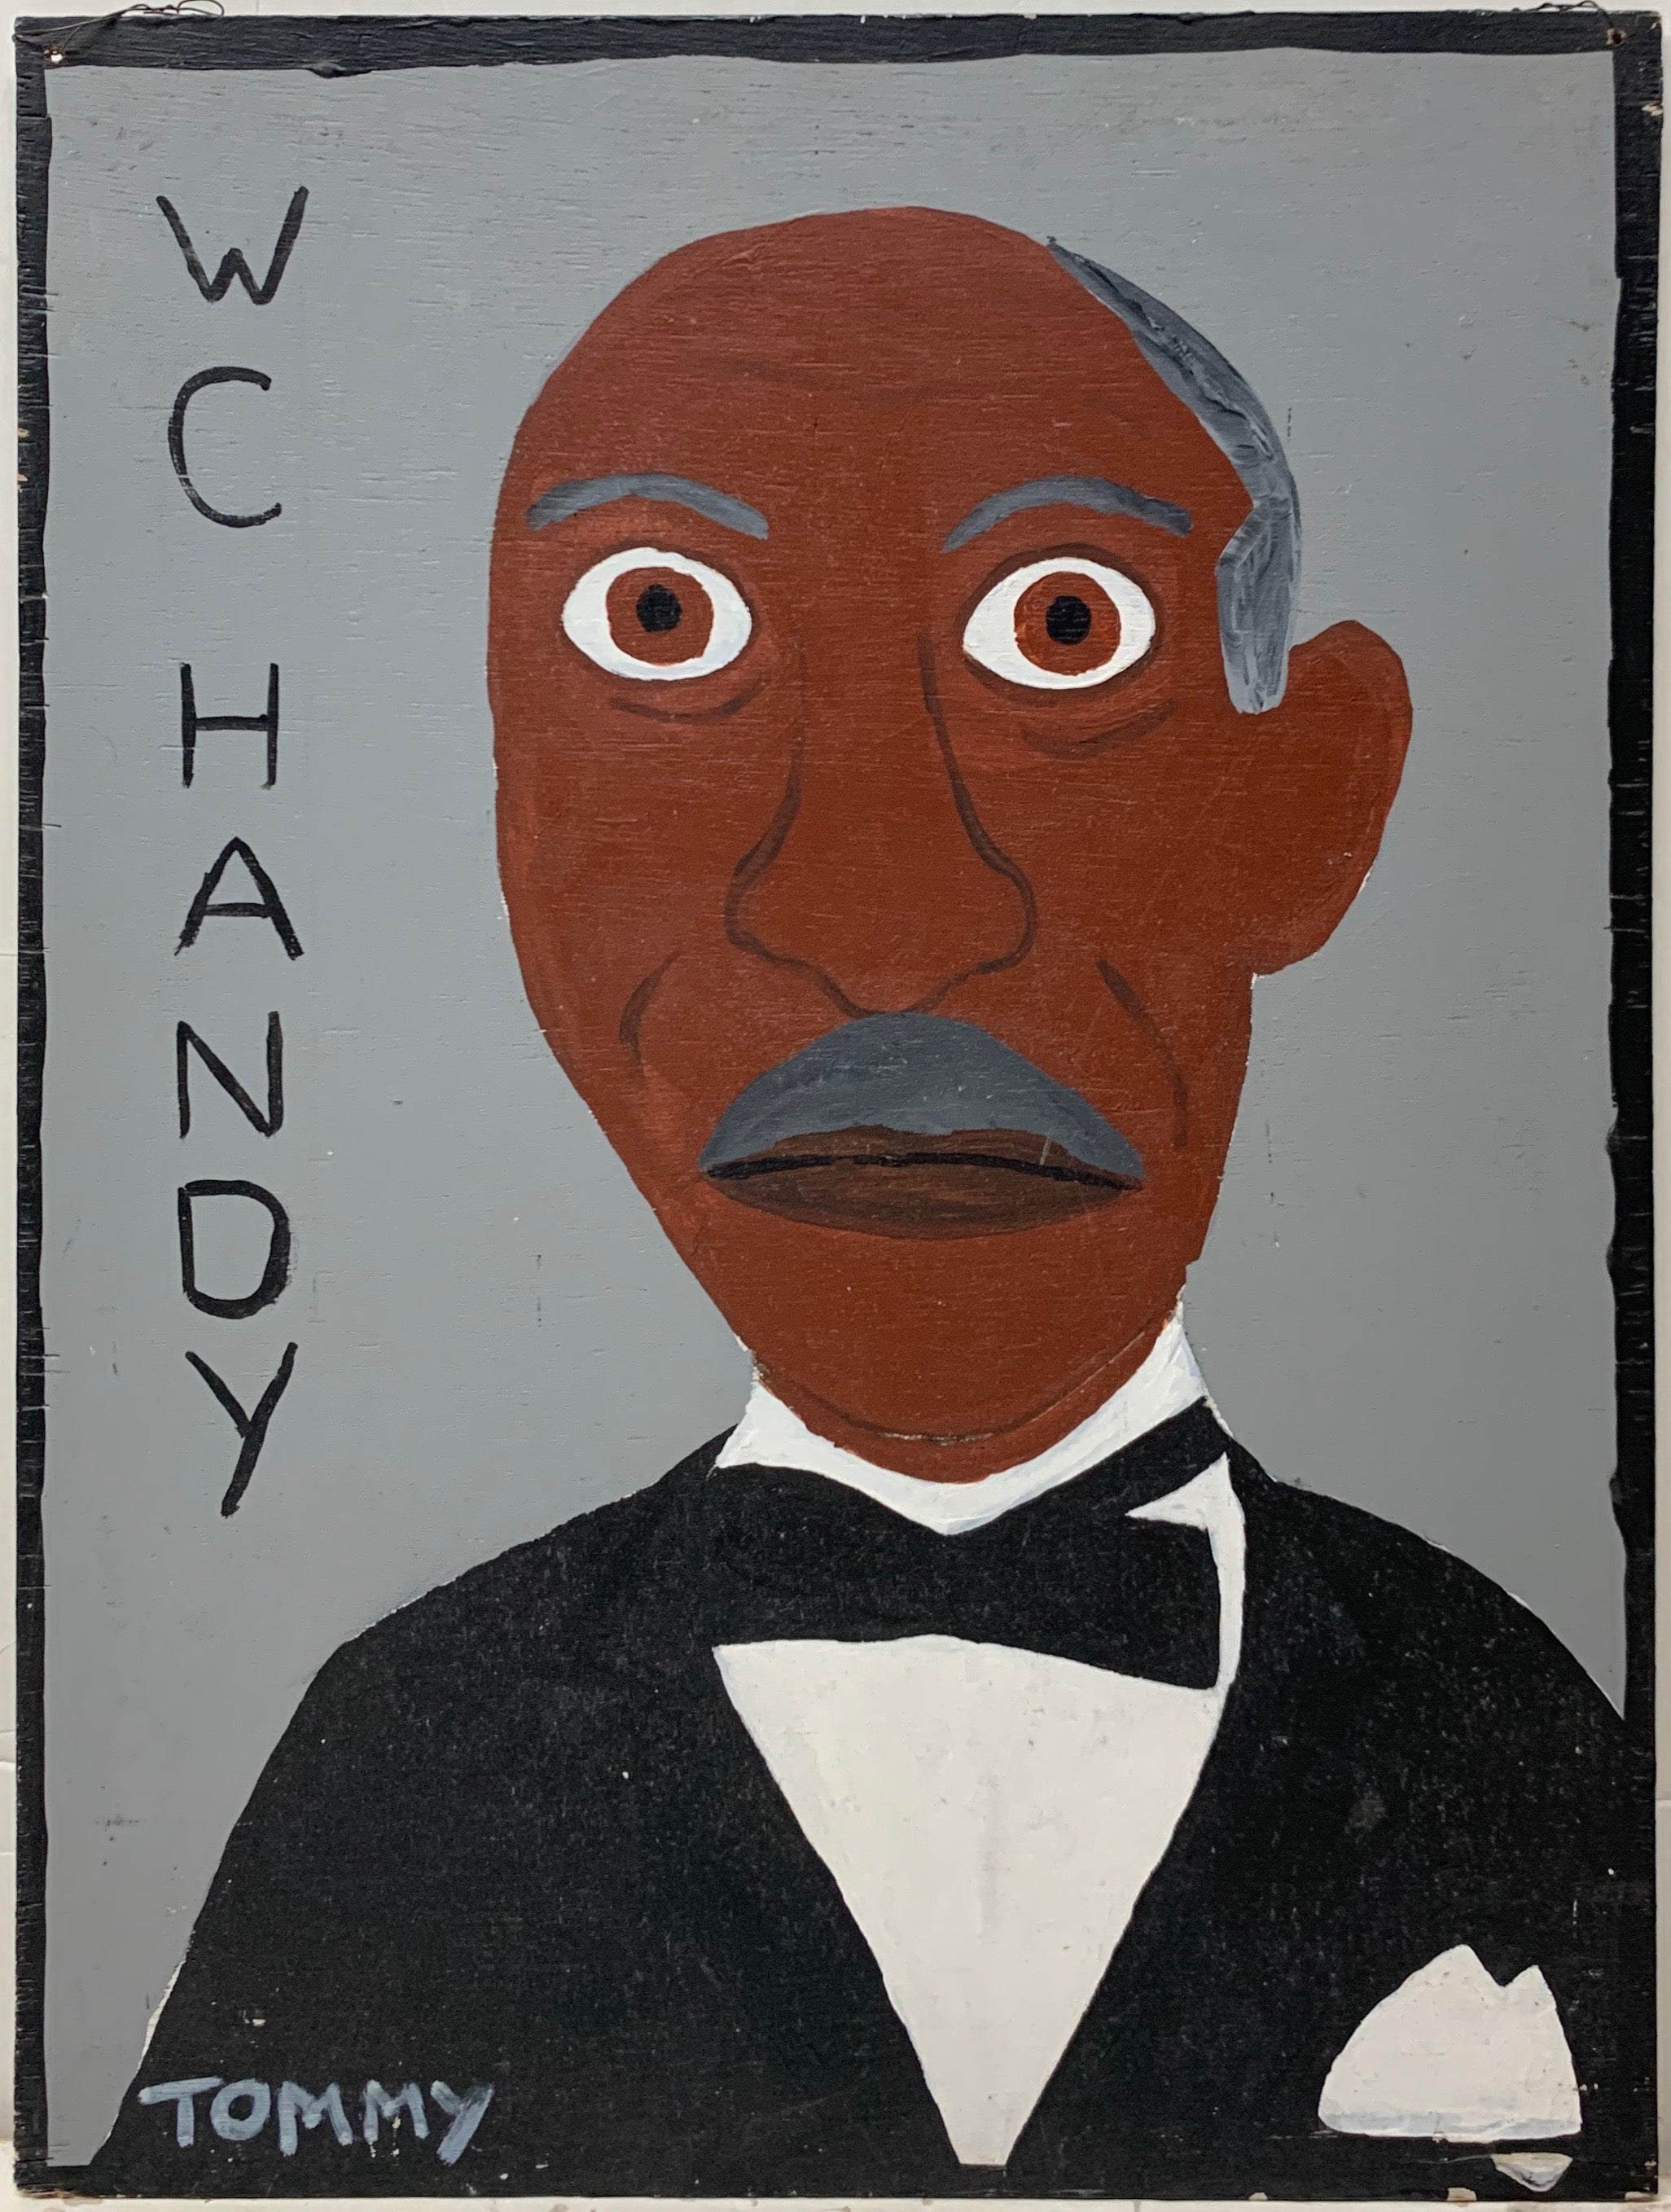 Tommy Cheng portrait of W.C. Handy, wearing a tux.